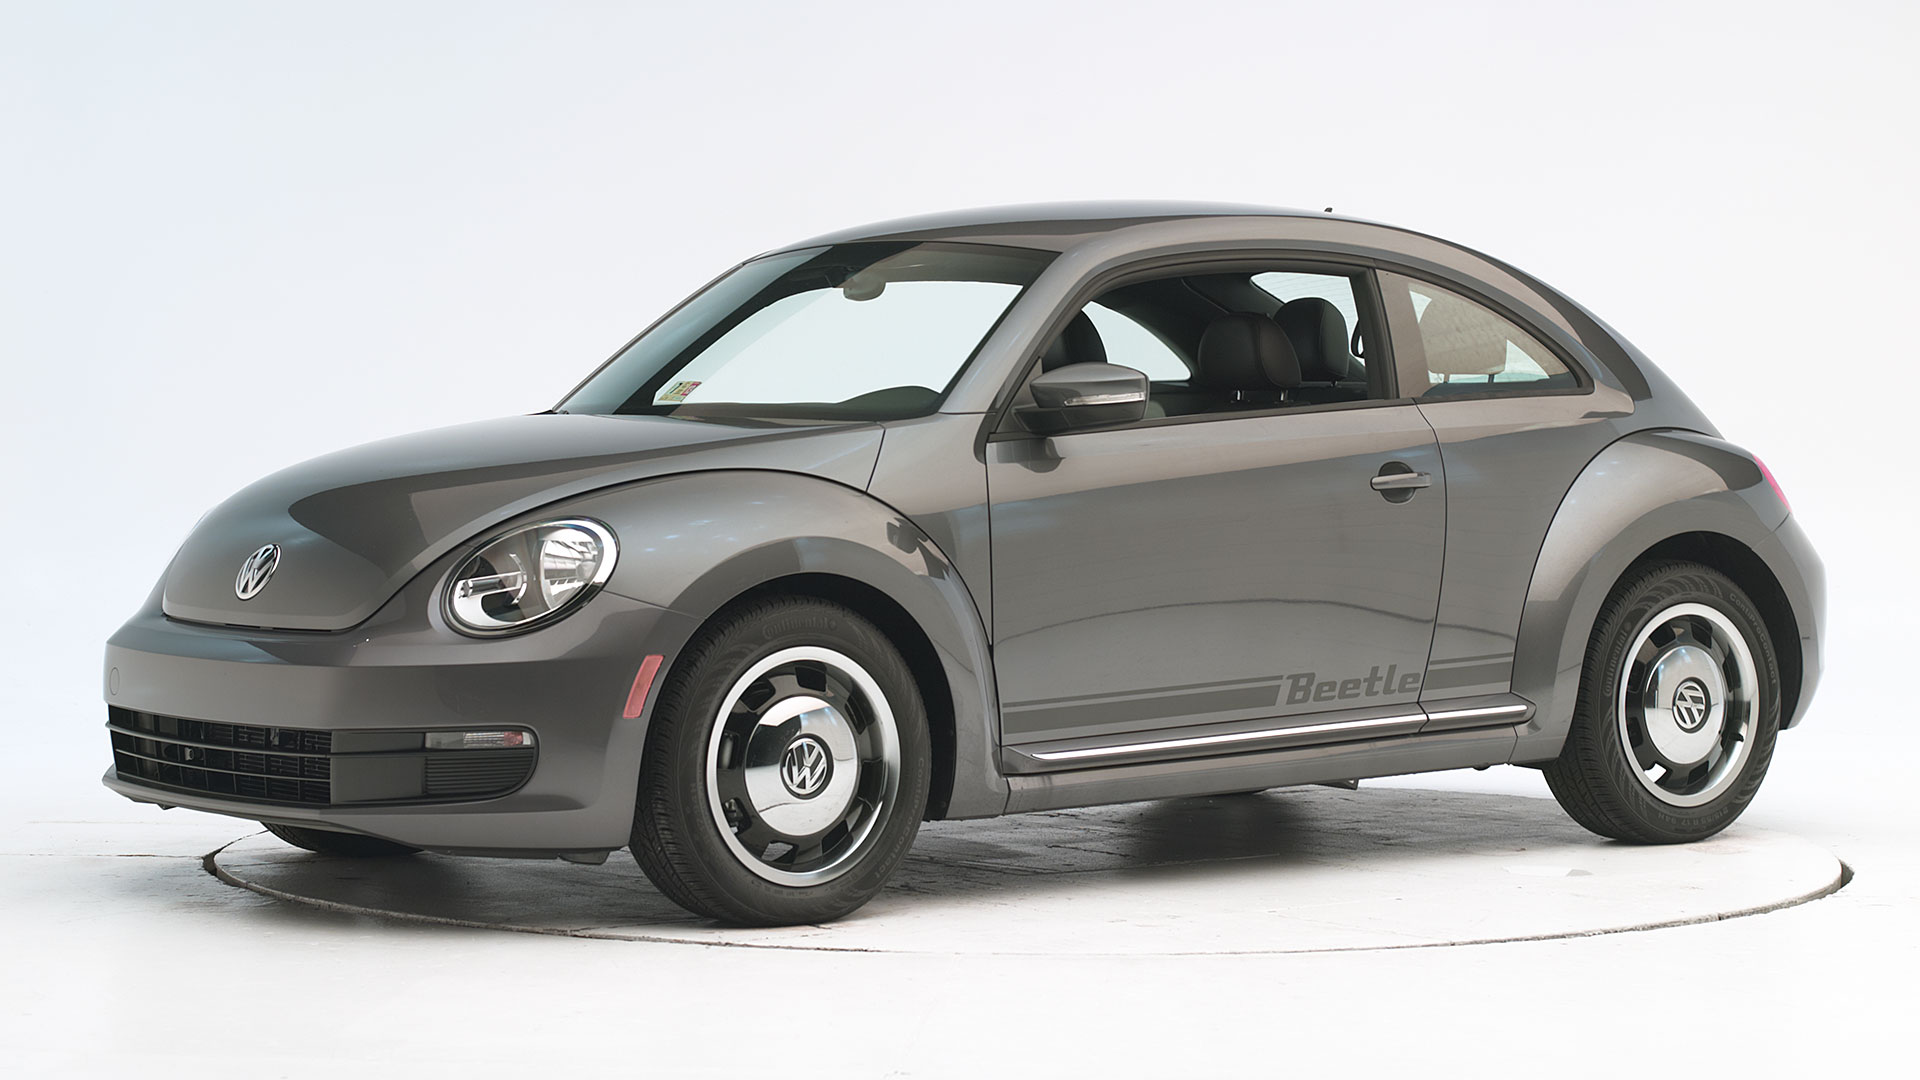 2012 Volkswagen Beetle 2-door hatchback